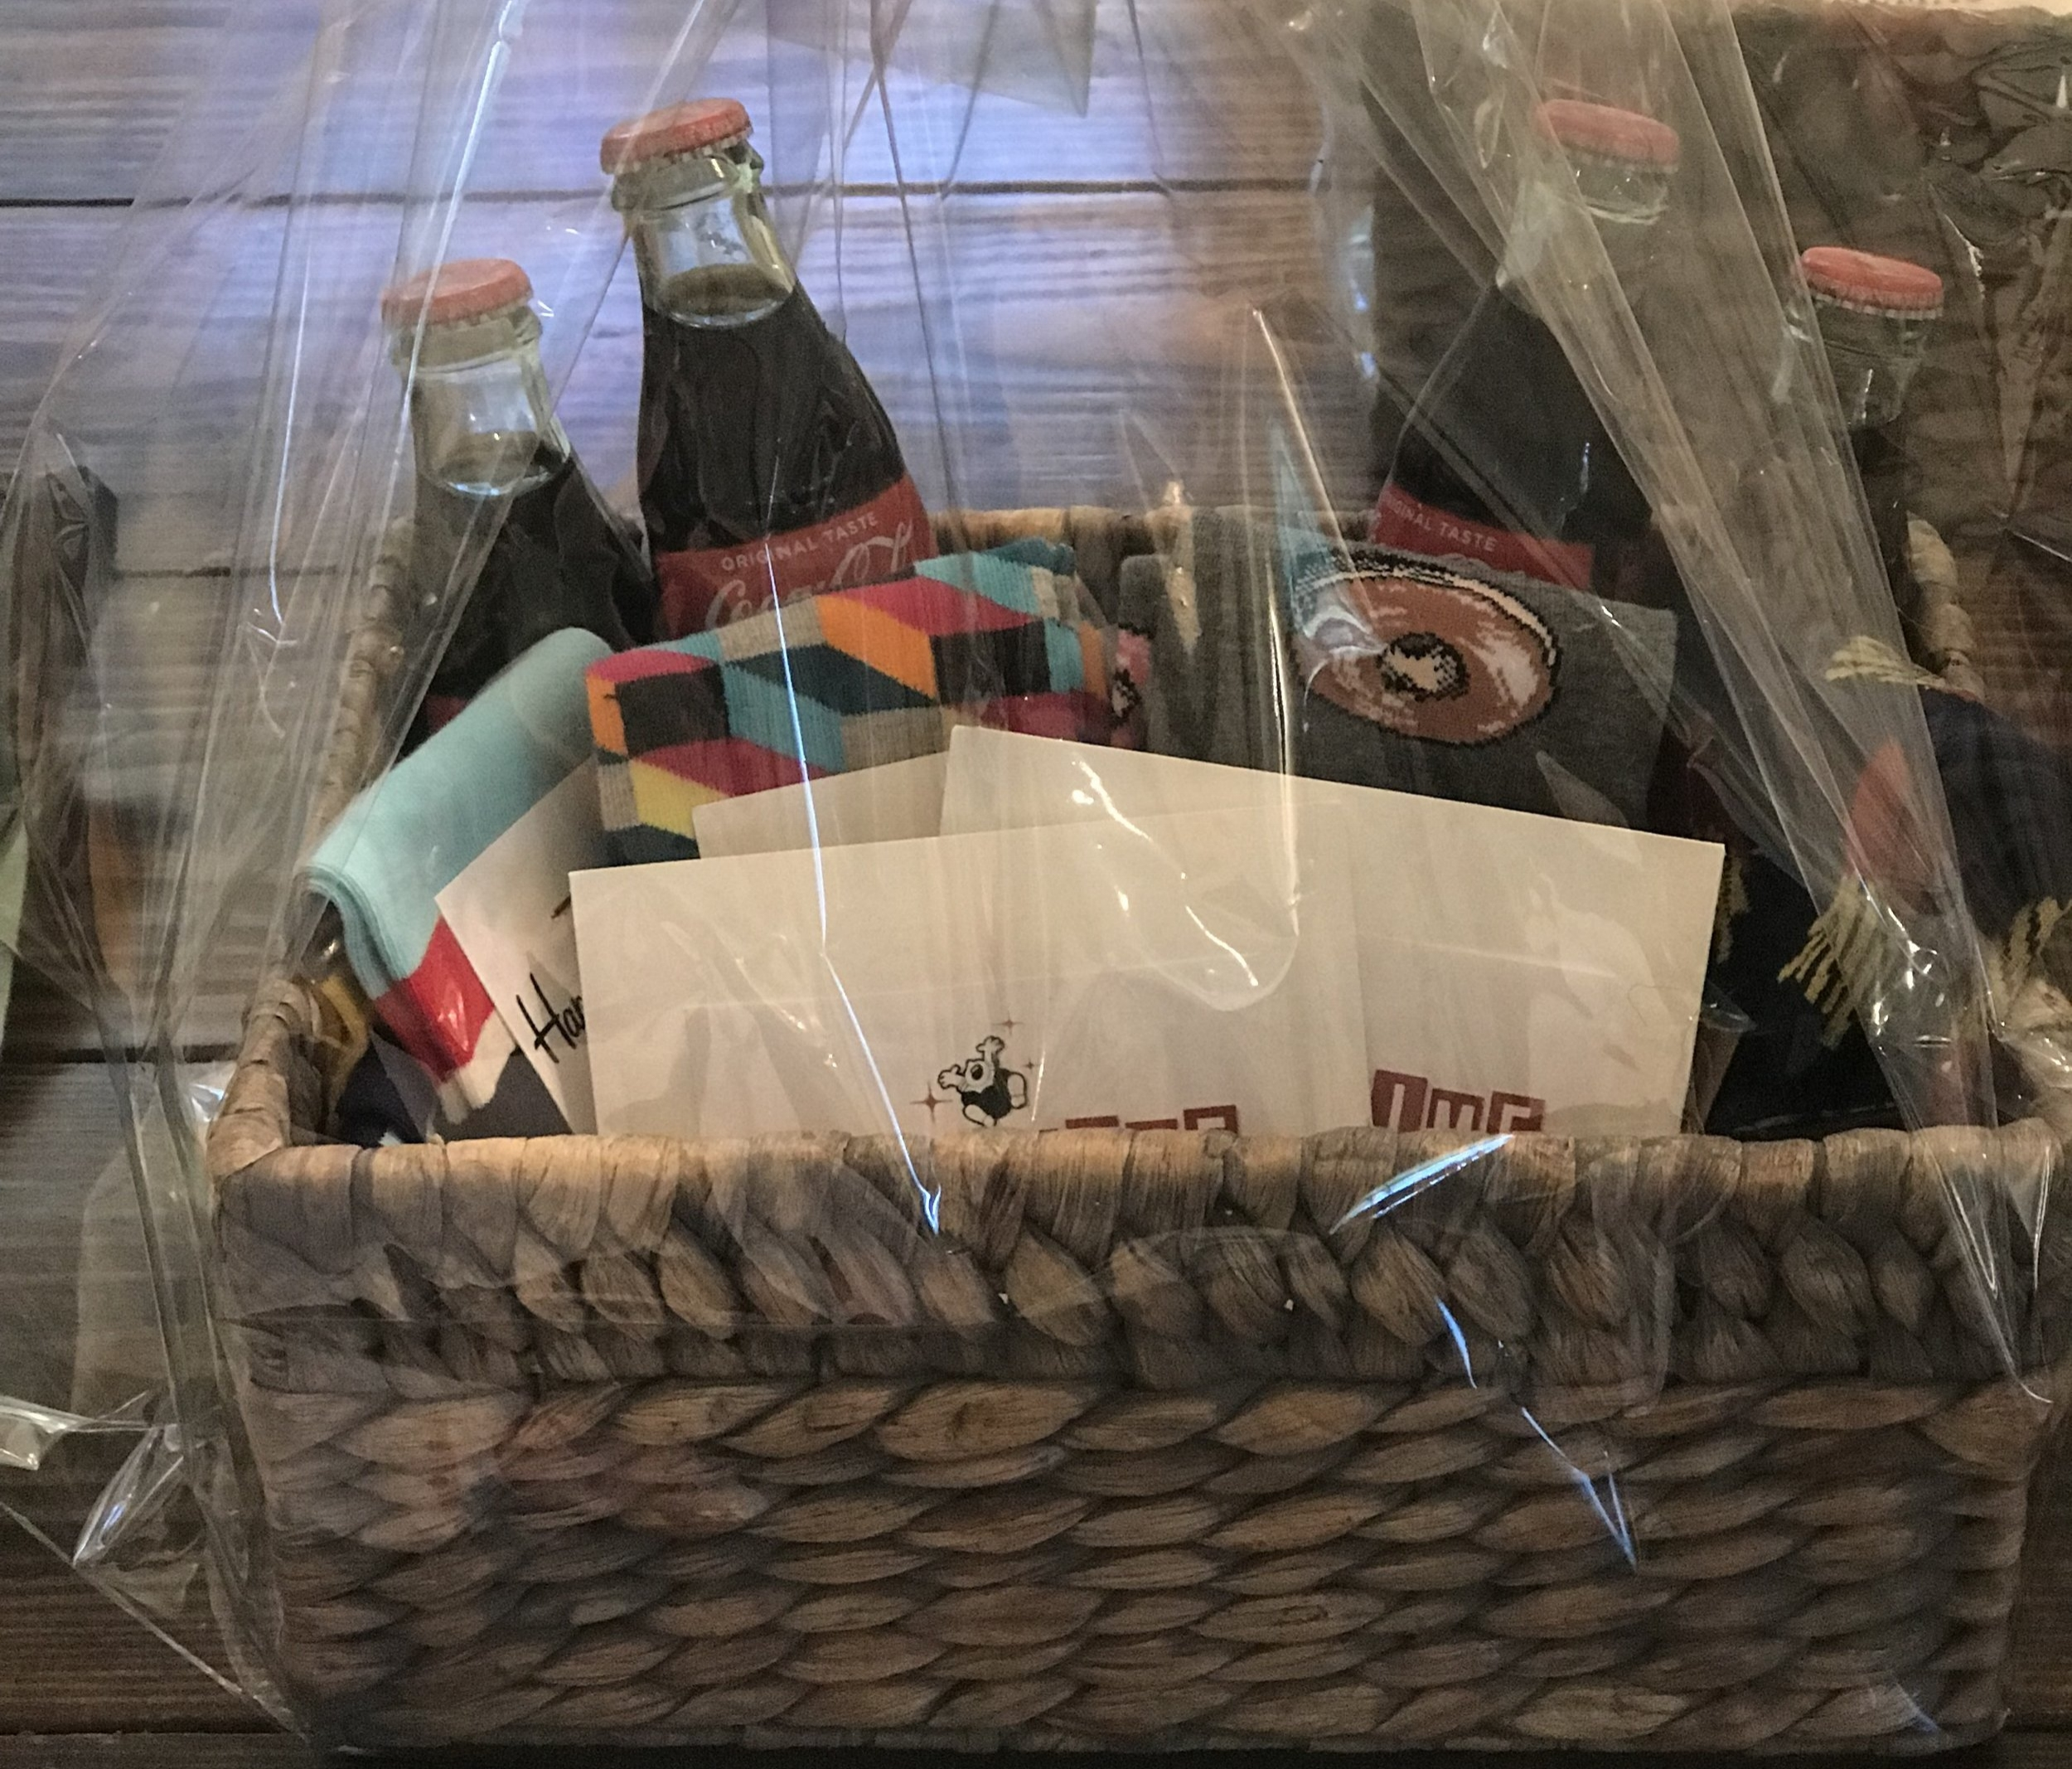 SPARE TIME BOWLING/MOVIE NIGHT BASKET   Get your GAME ON at Spare Time with the family. Included are $50 toward bowling and shoes, $30 toward Games, fun socks, Cokes and candy.  DONOR: 1st Grade Classes VALUE: $105